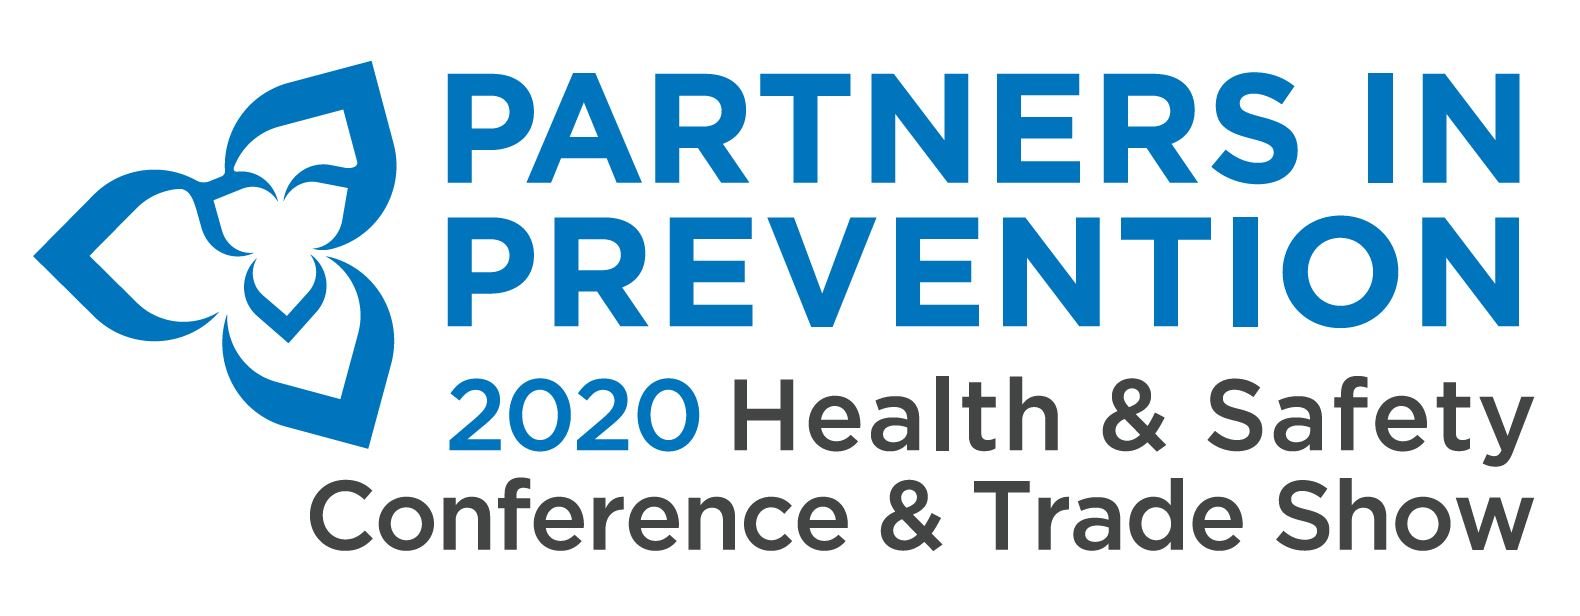 [CANCELLED] Partners in Prevention 2020 Health & Safety Conference & Trade Show